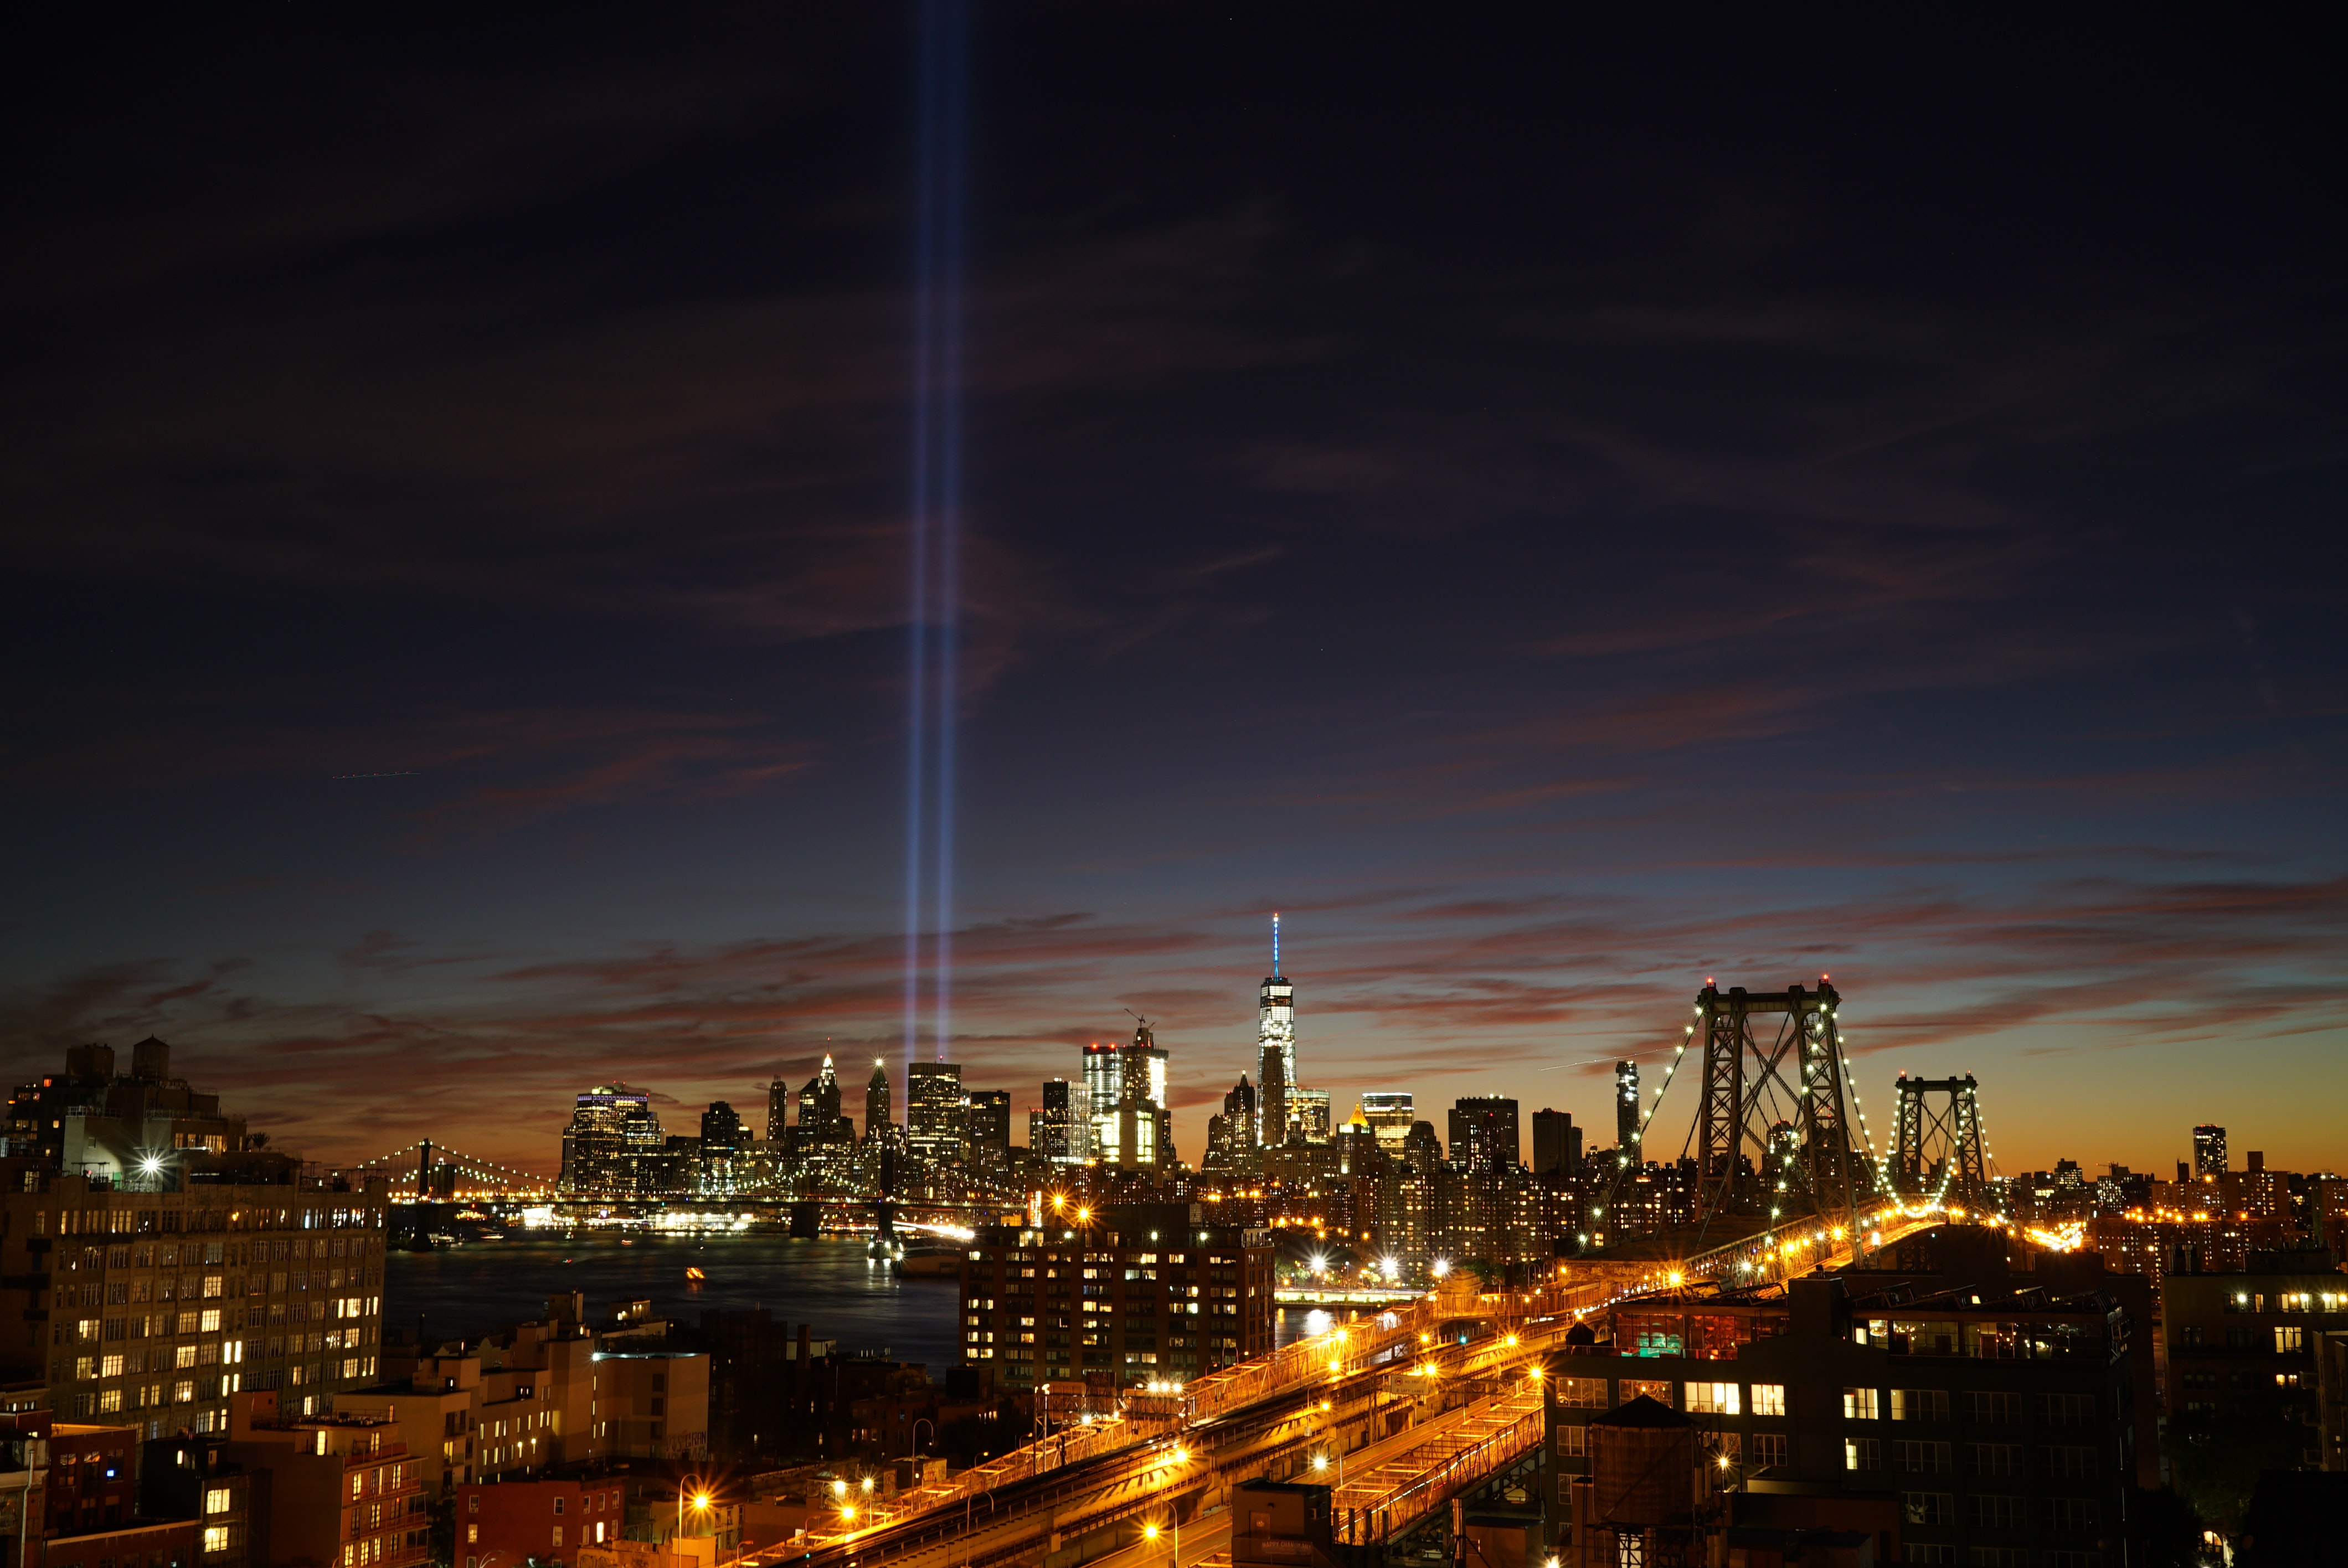 New York City's Brooklyn Bridge and city skyline with lights glowing at sunset